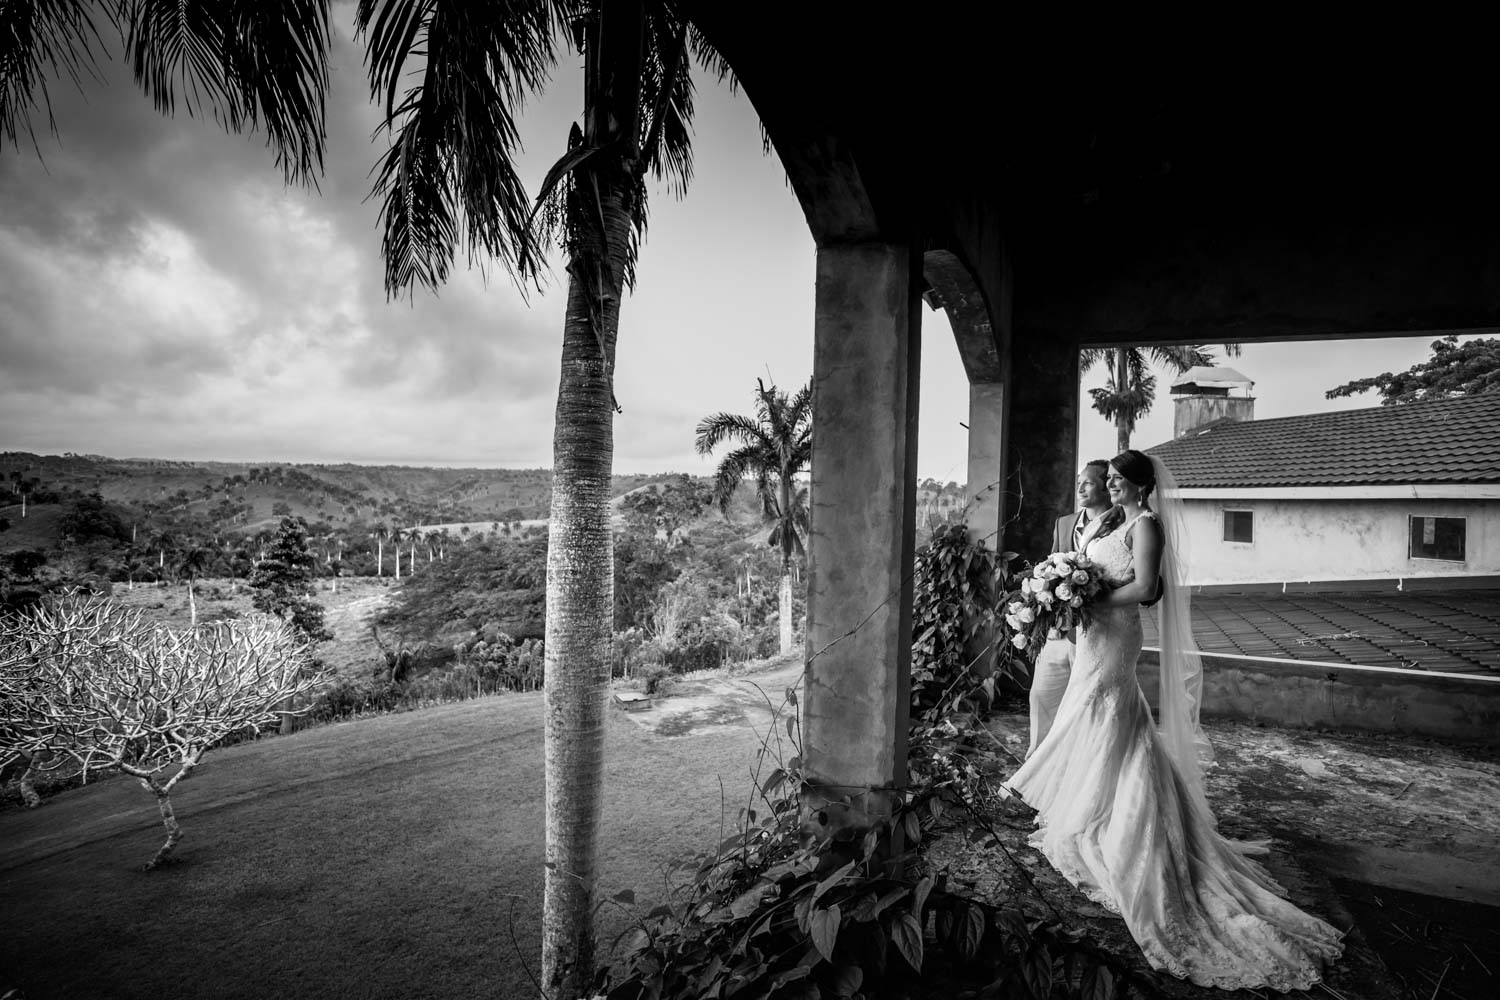 Bride and groom pose for photo at Castle Club in Cabarete Dominican Republic after their wedding